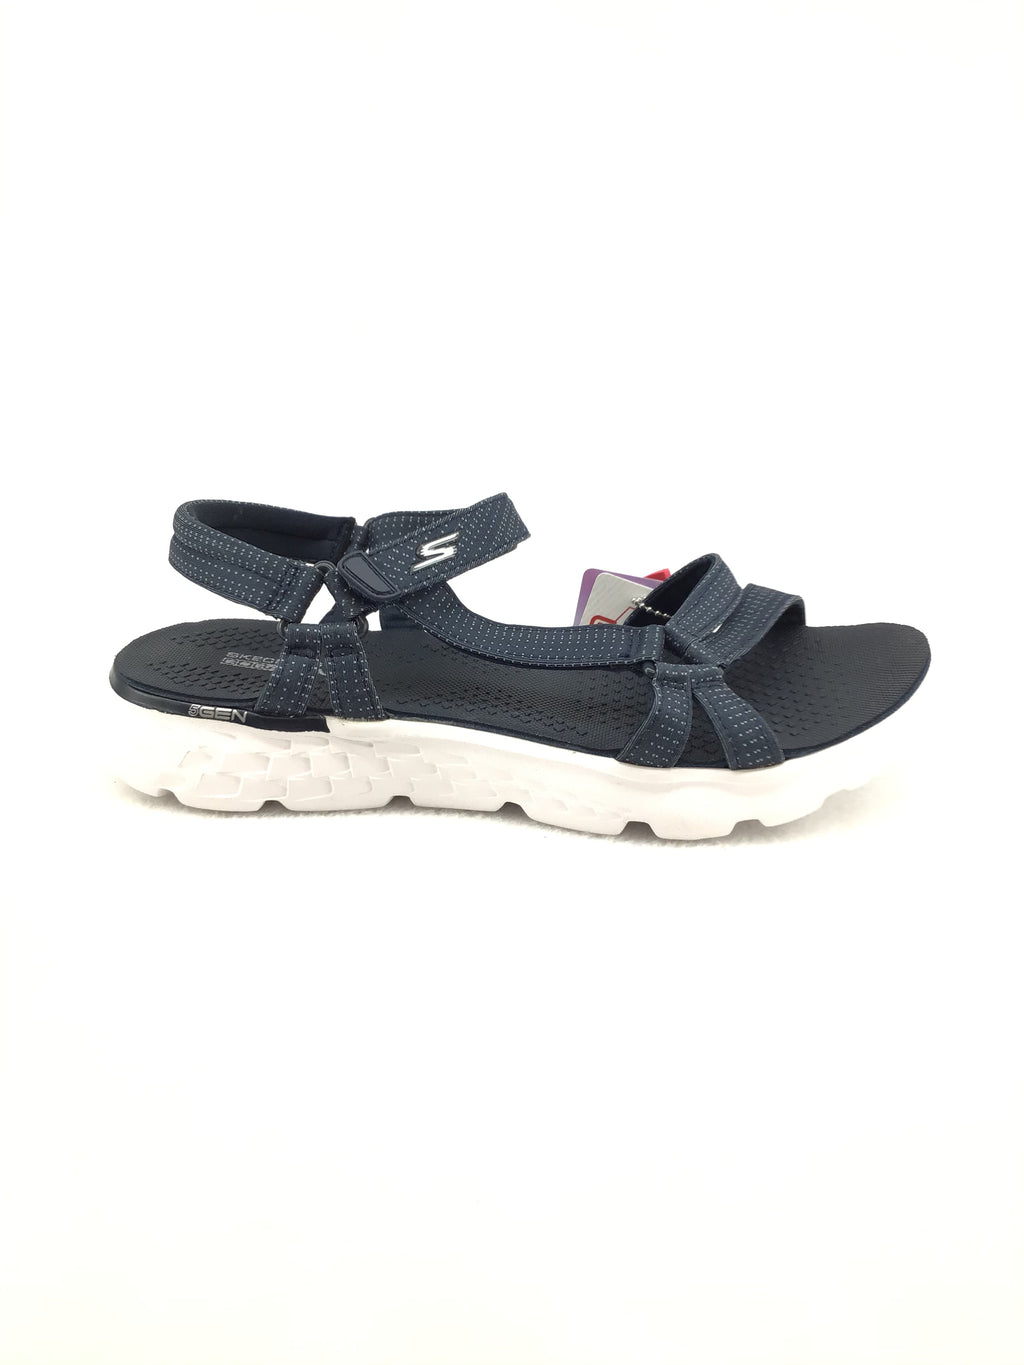 Skechers GoGo Max Sandals Size 9